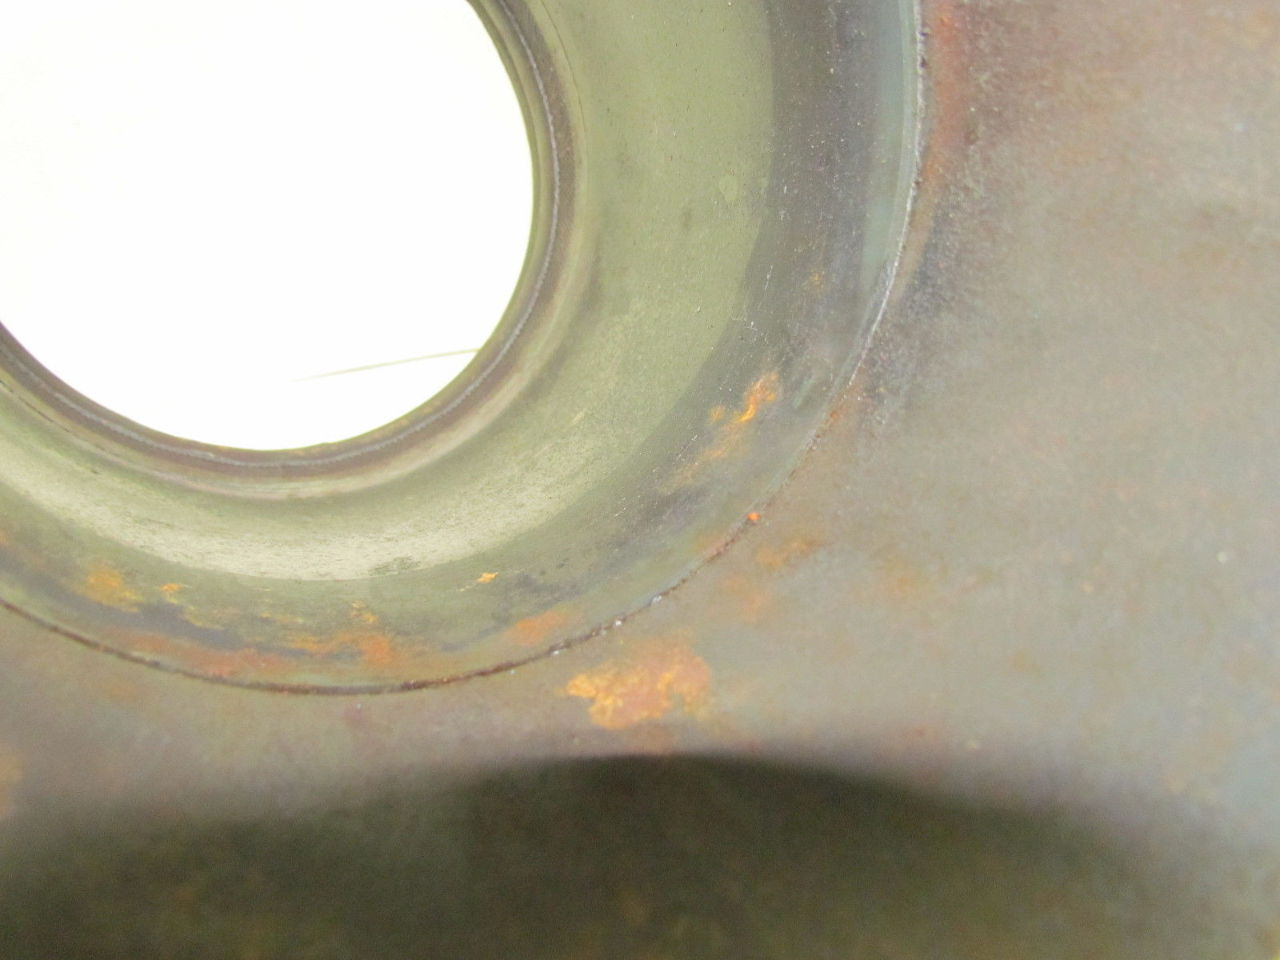 Quot concentric reducer grooved end steel pipe fitting